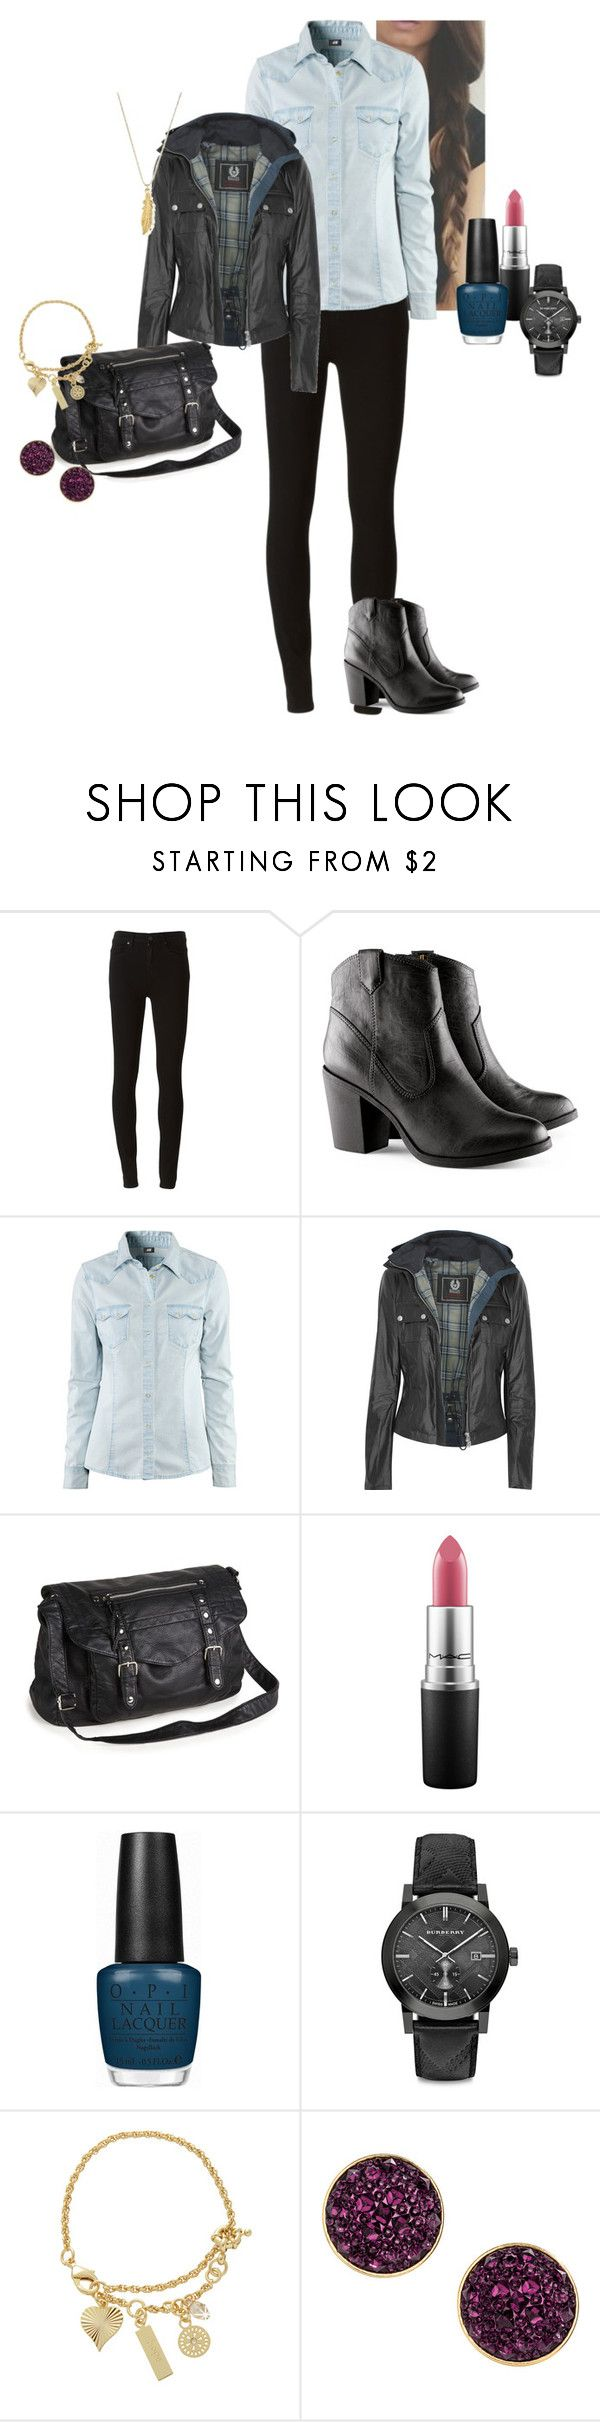 """""""Roxanne """"Rox"""" Lara Walsh - Réussir ou mourir (S02E06)"""" by katlayden ❤ liked on Polyvore featuring Paige Denim, H&M, Belstaff, Aéropostale, MAC Cosmetics, OPI, Burberry, LK Designs and ChloBo"""